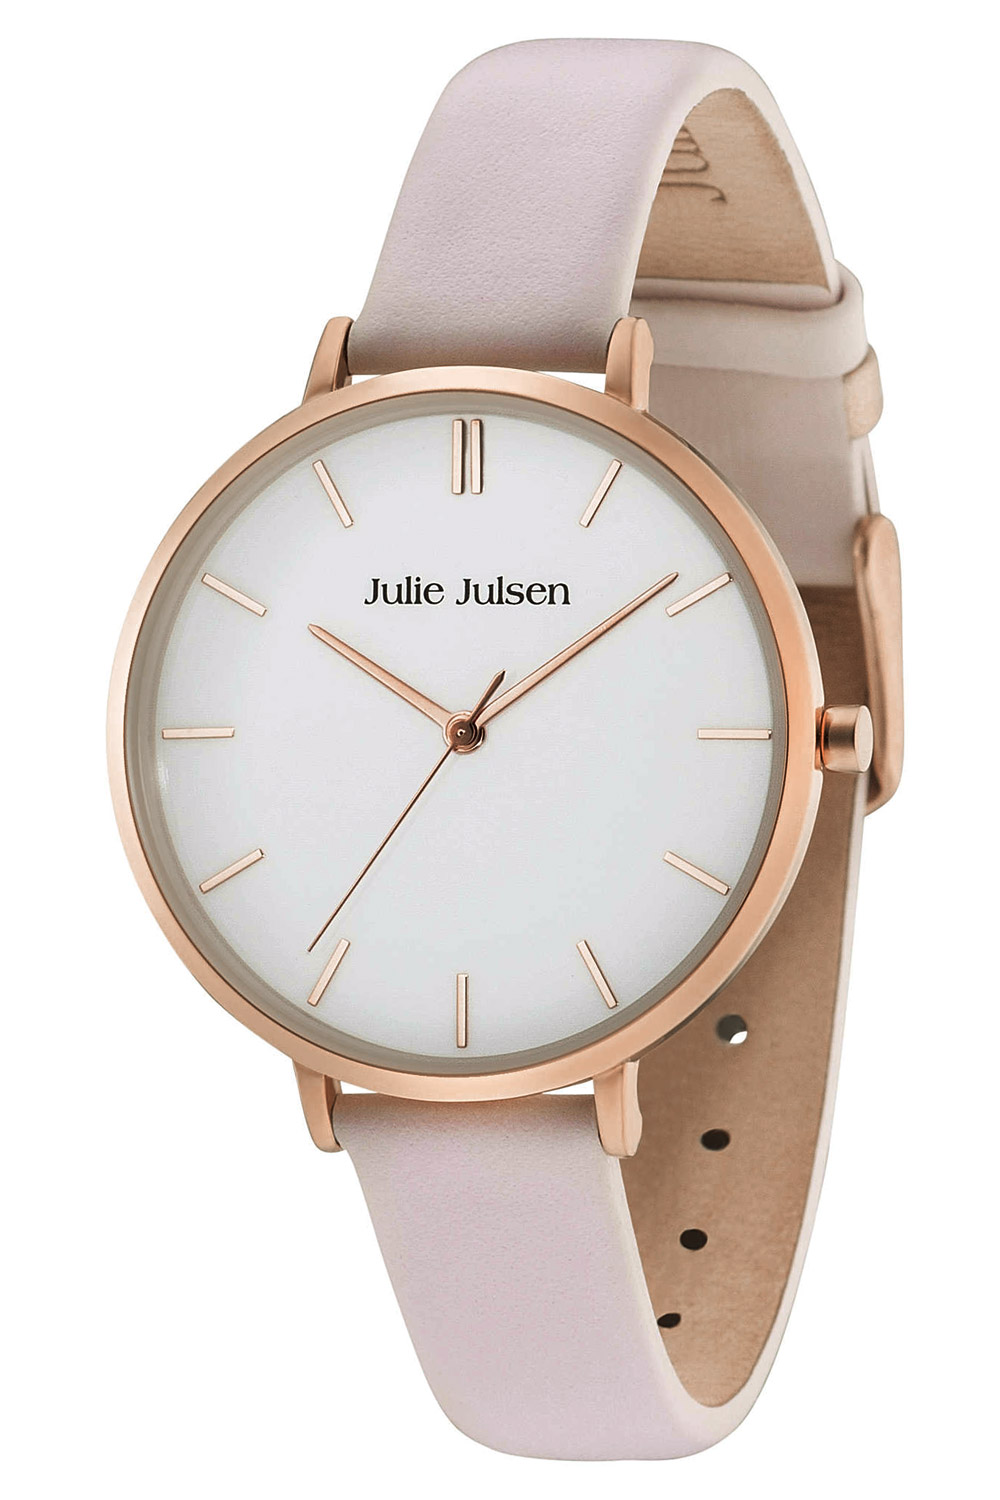 bei Uhrcenter: Julie Julsen JJW10RGL-2 Damenuhr Pure Rosé Light Pink - Damenuhr